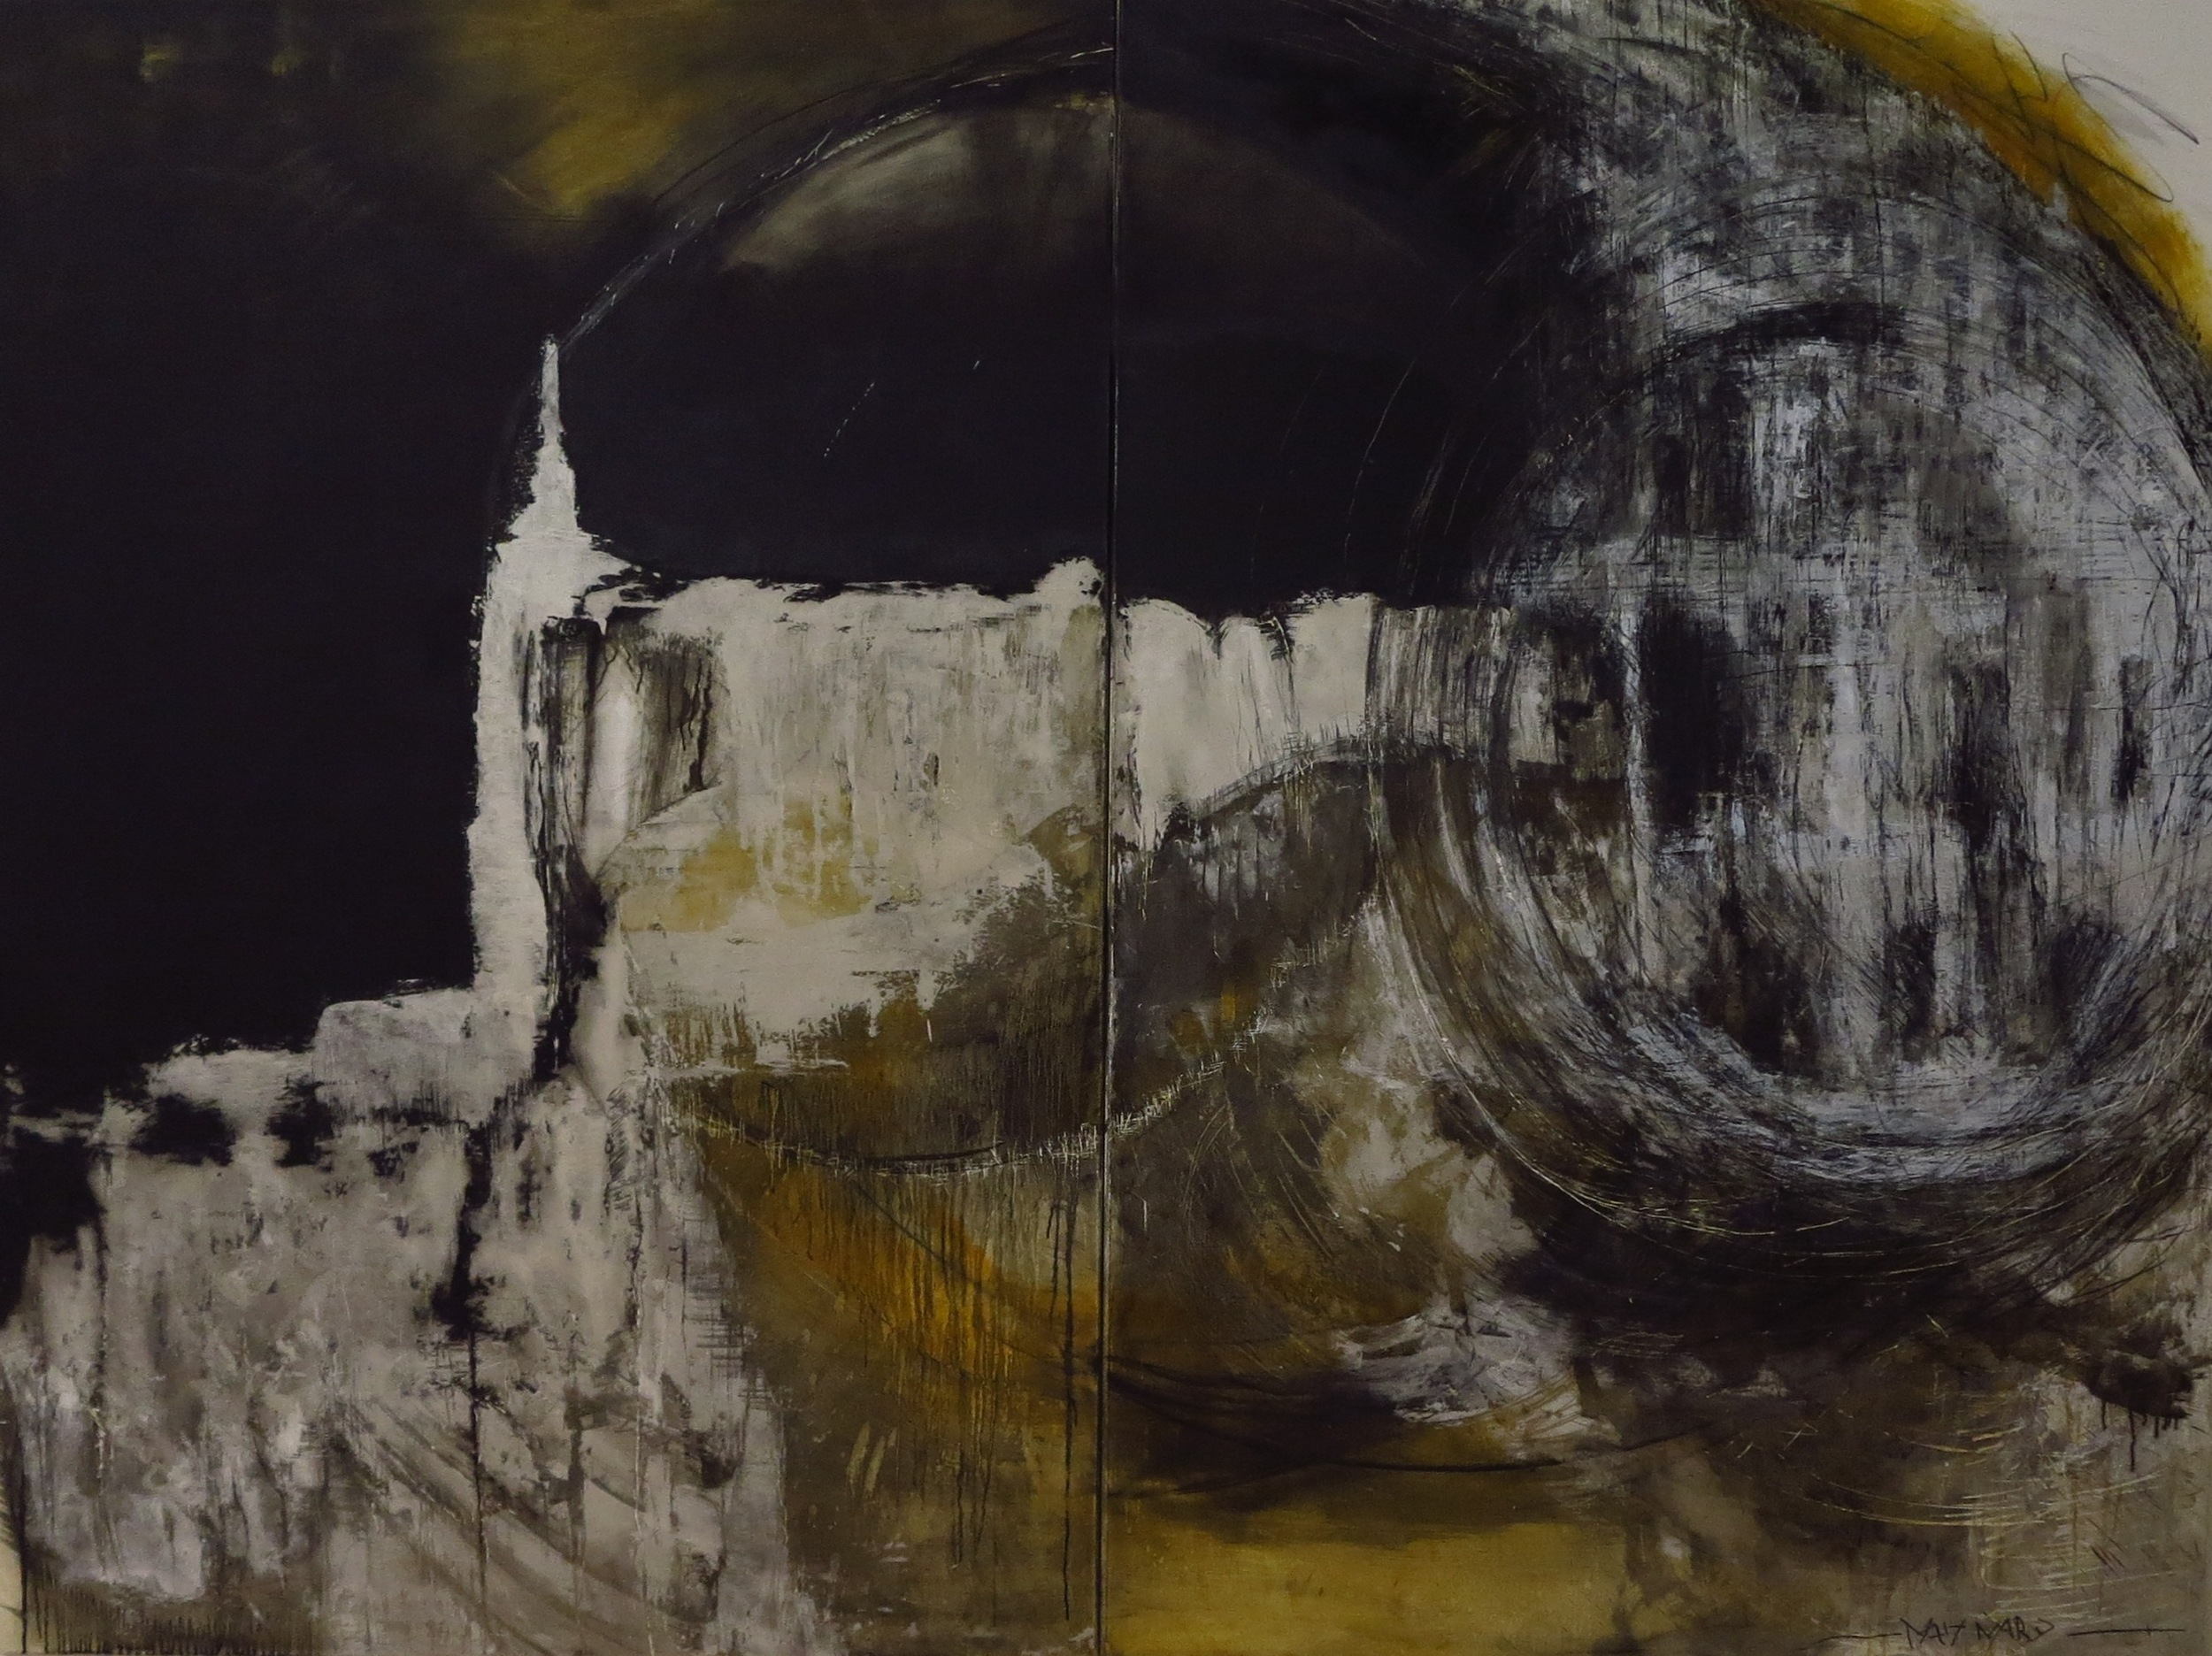 Diptych oil on canvas - size 260 x 200 cm / 102 x 79 inches